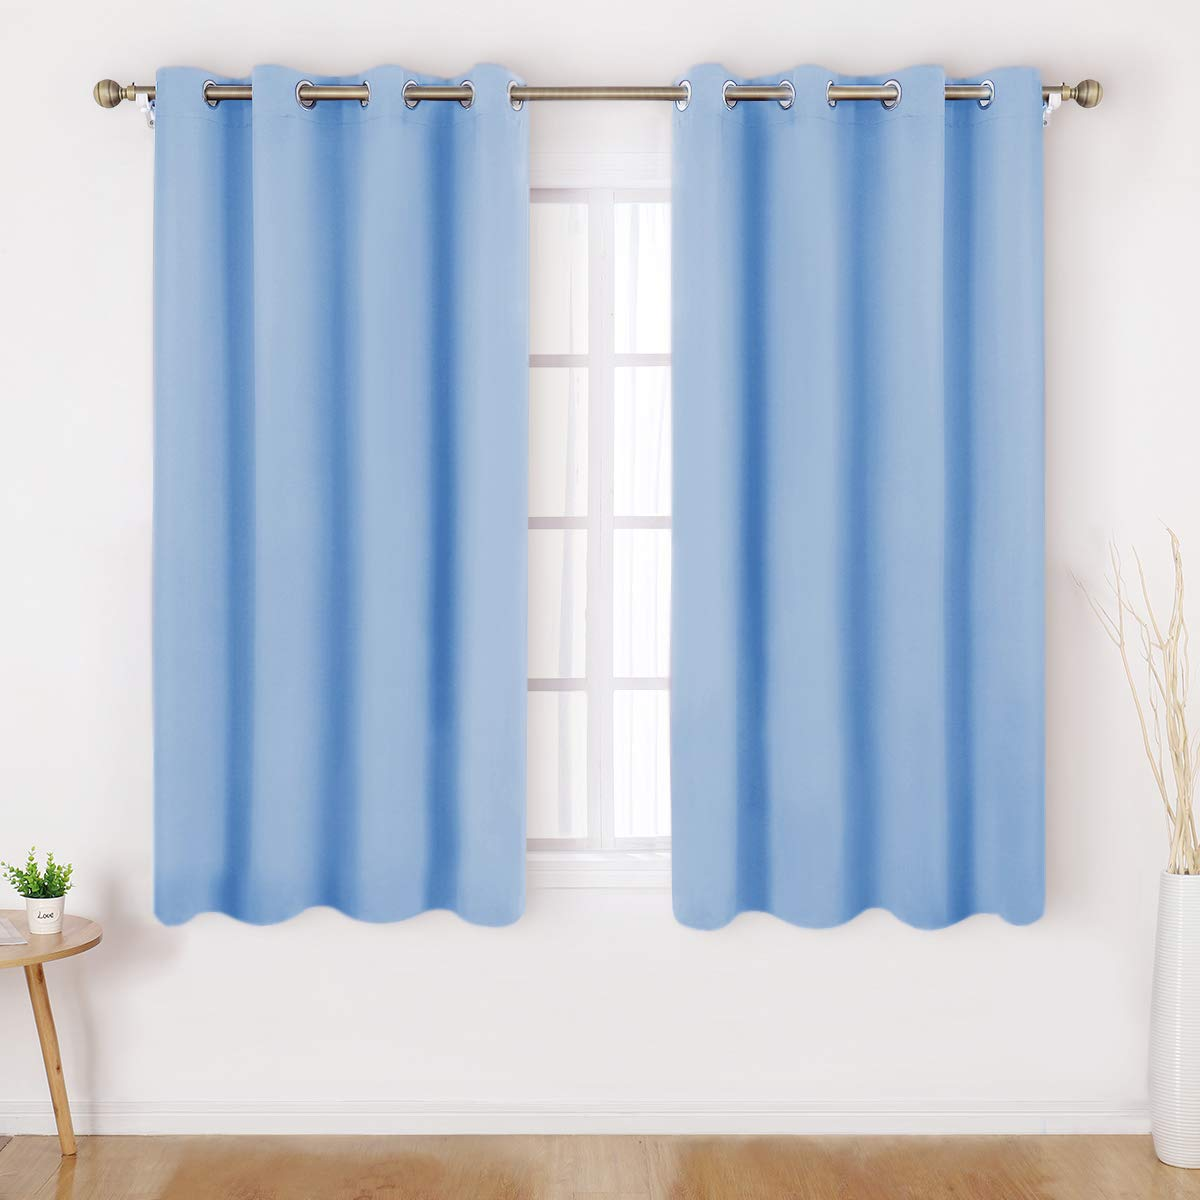 HOMEIDEAS Blackout Curtains 52 X 45 Inch Length Set of 2 Panels Baby Blue Room Darkening Bedroom Curtains/Drapes, Thermal Grommet Light Bolcking Window Curtains for Living Room